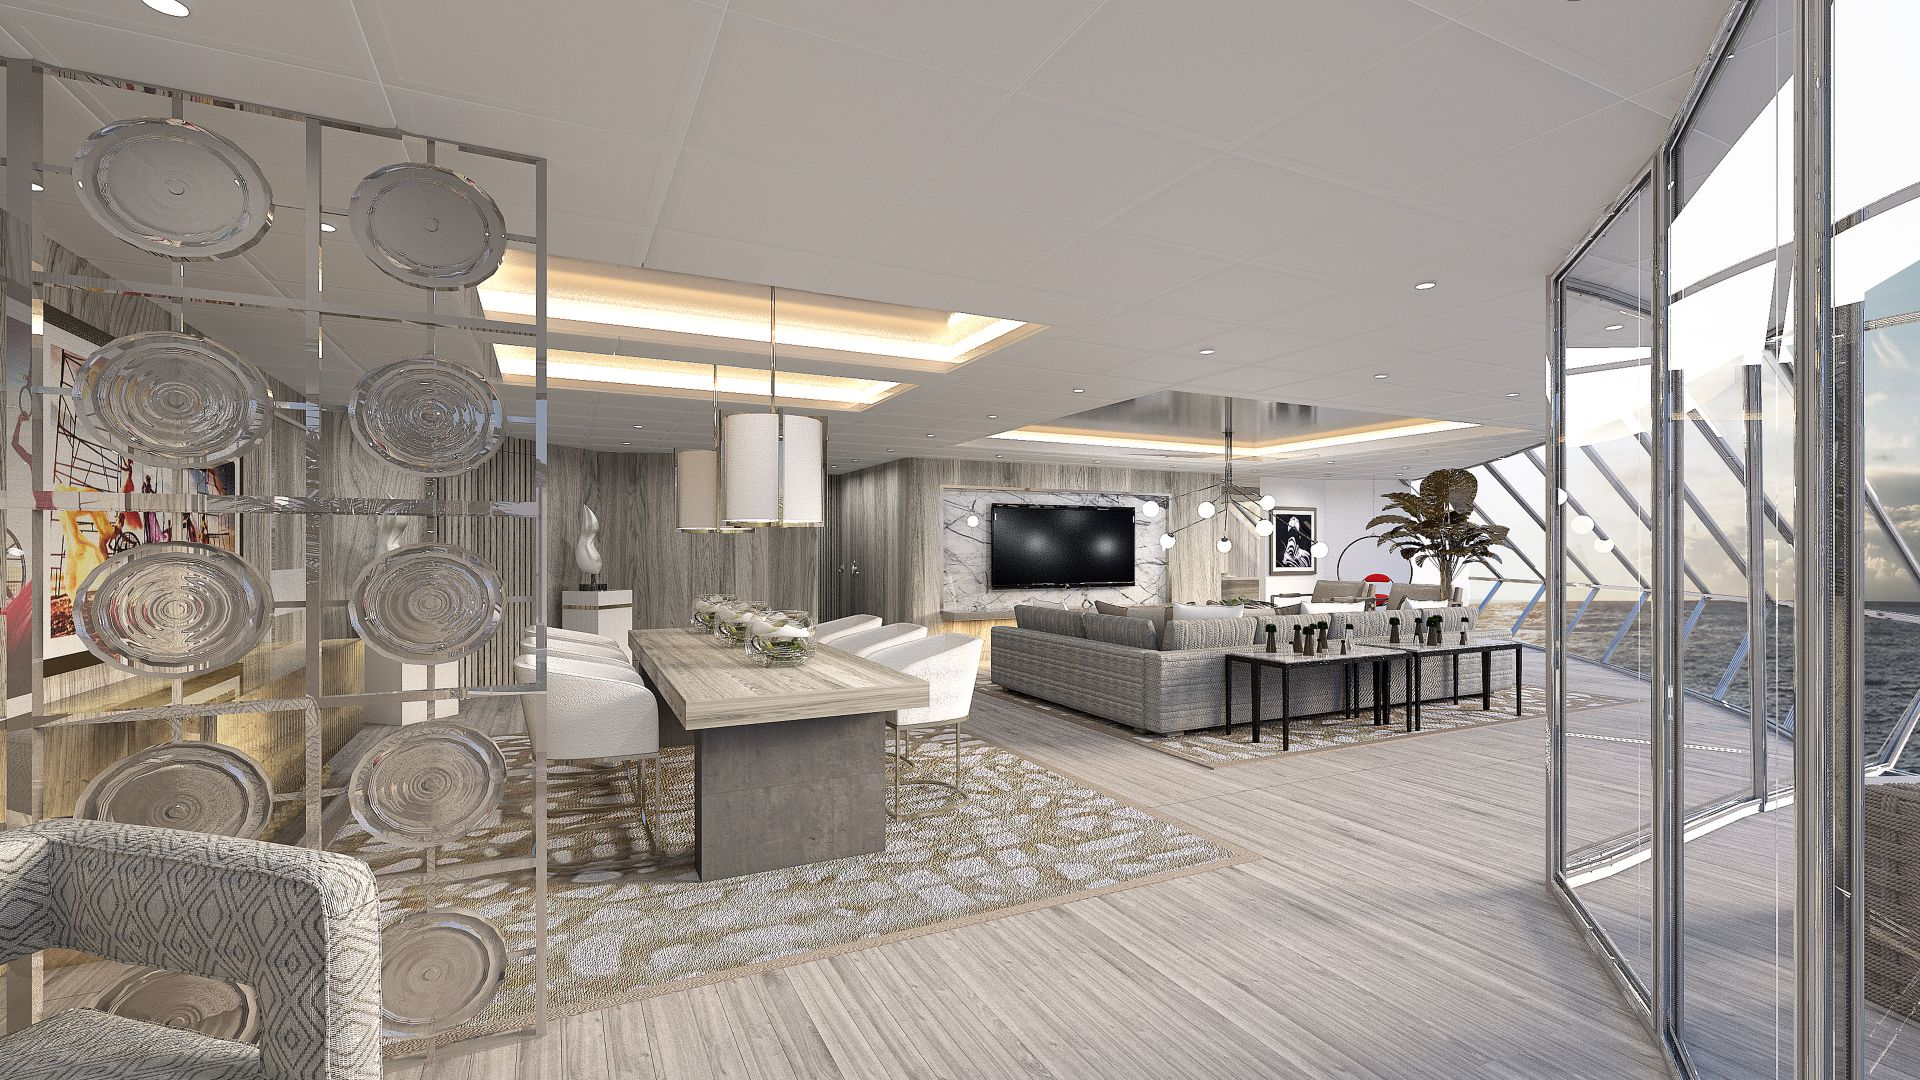 First Look - Celebrity Edge: Iconic Suite